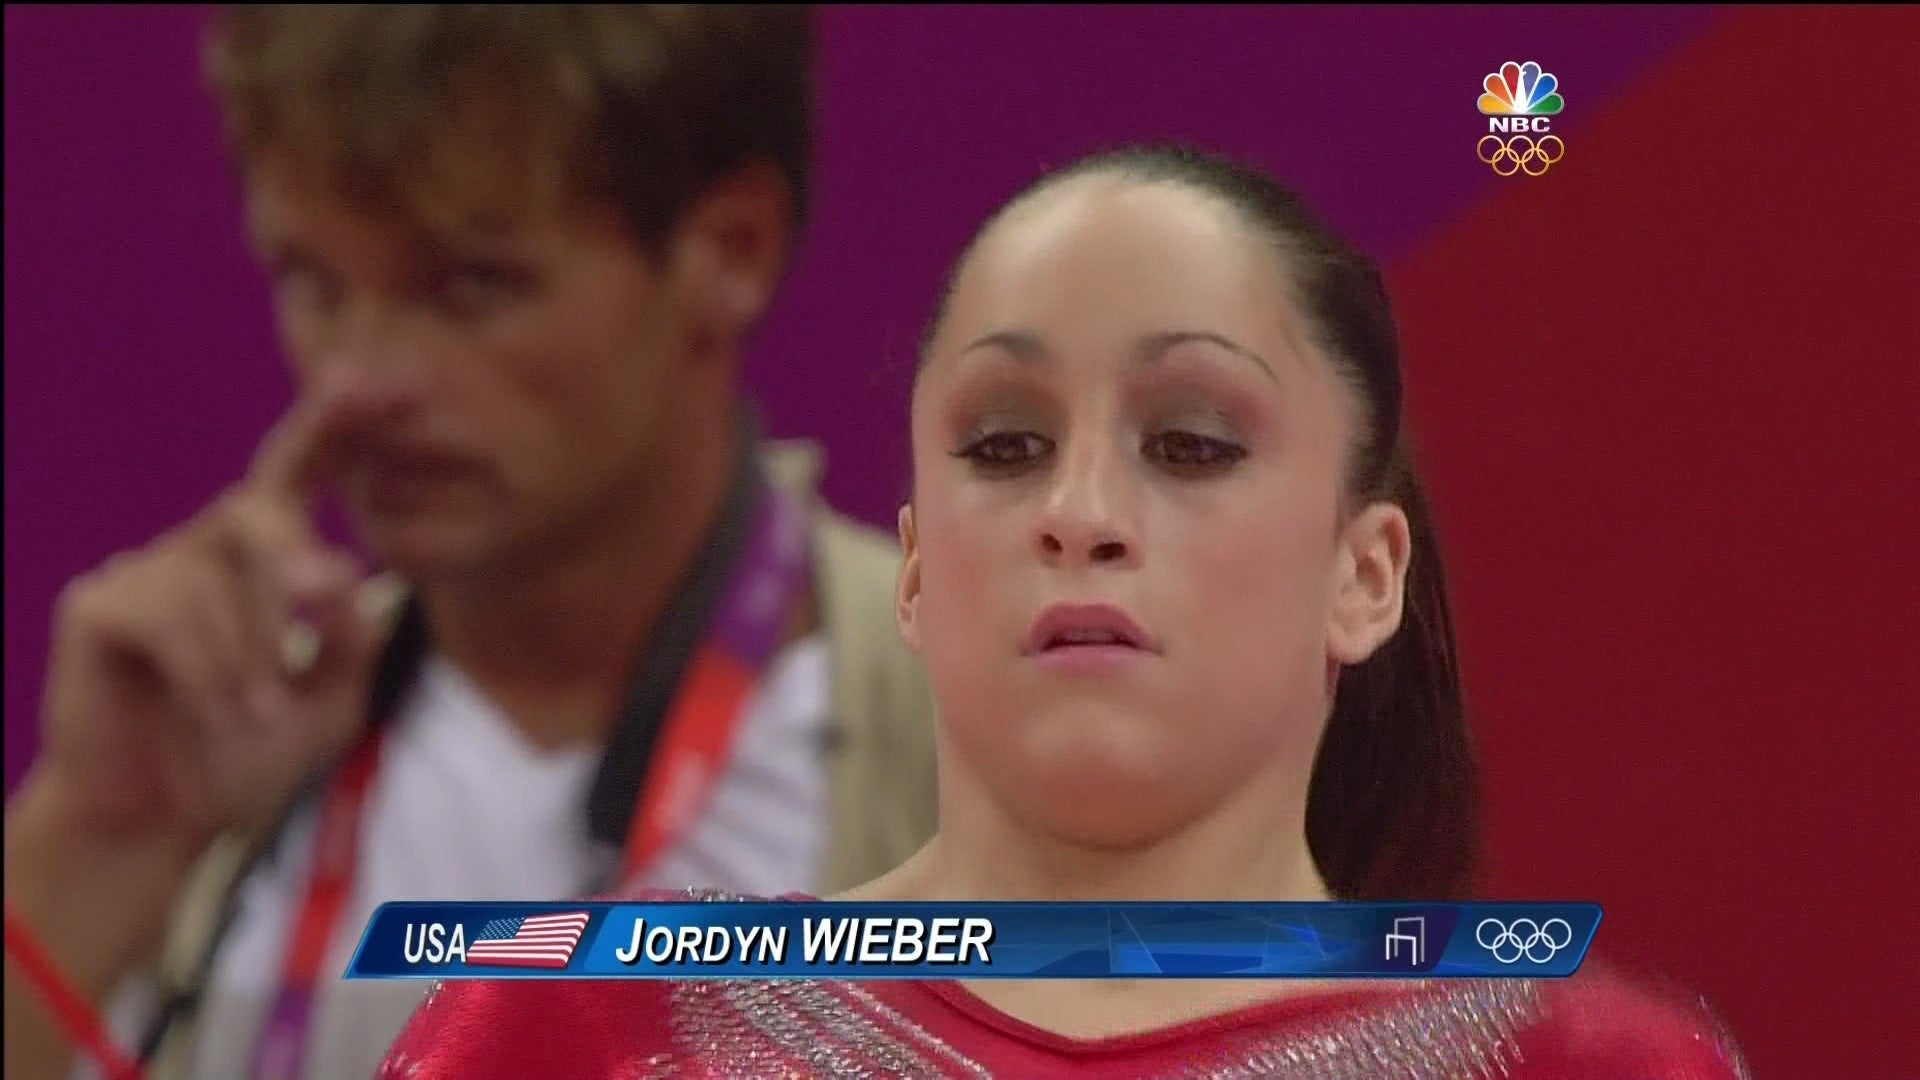 When It Comes To Gymnastics, It's Good To Pick A Winner